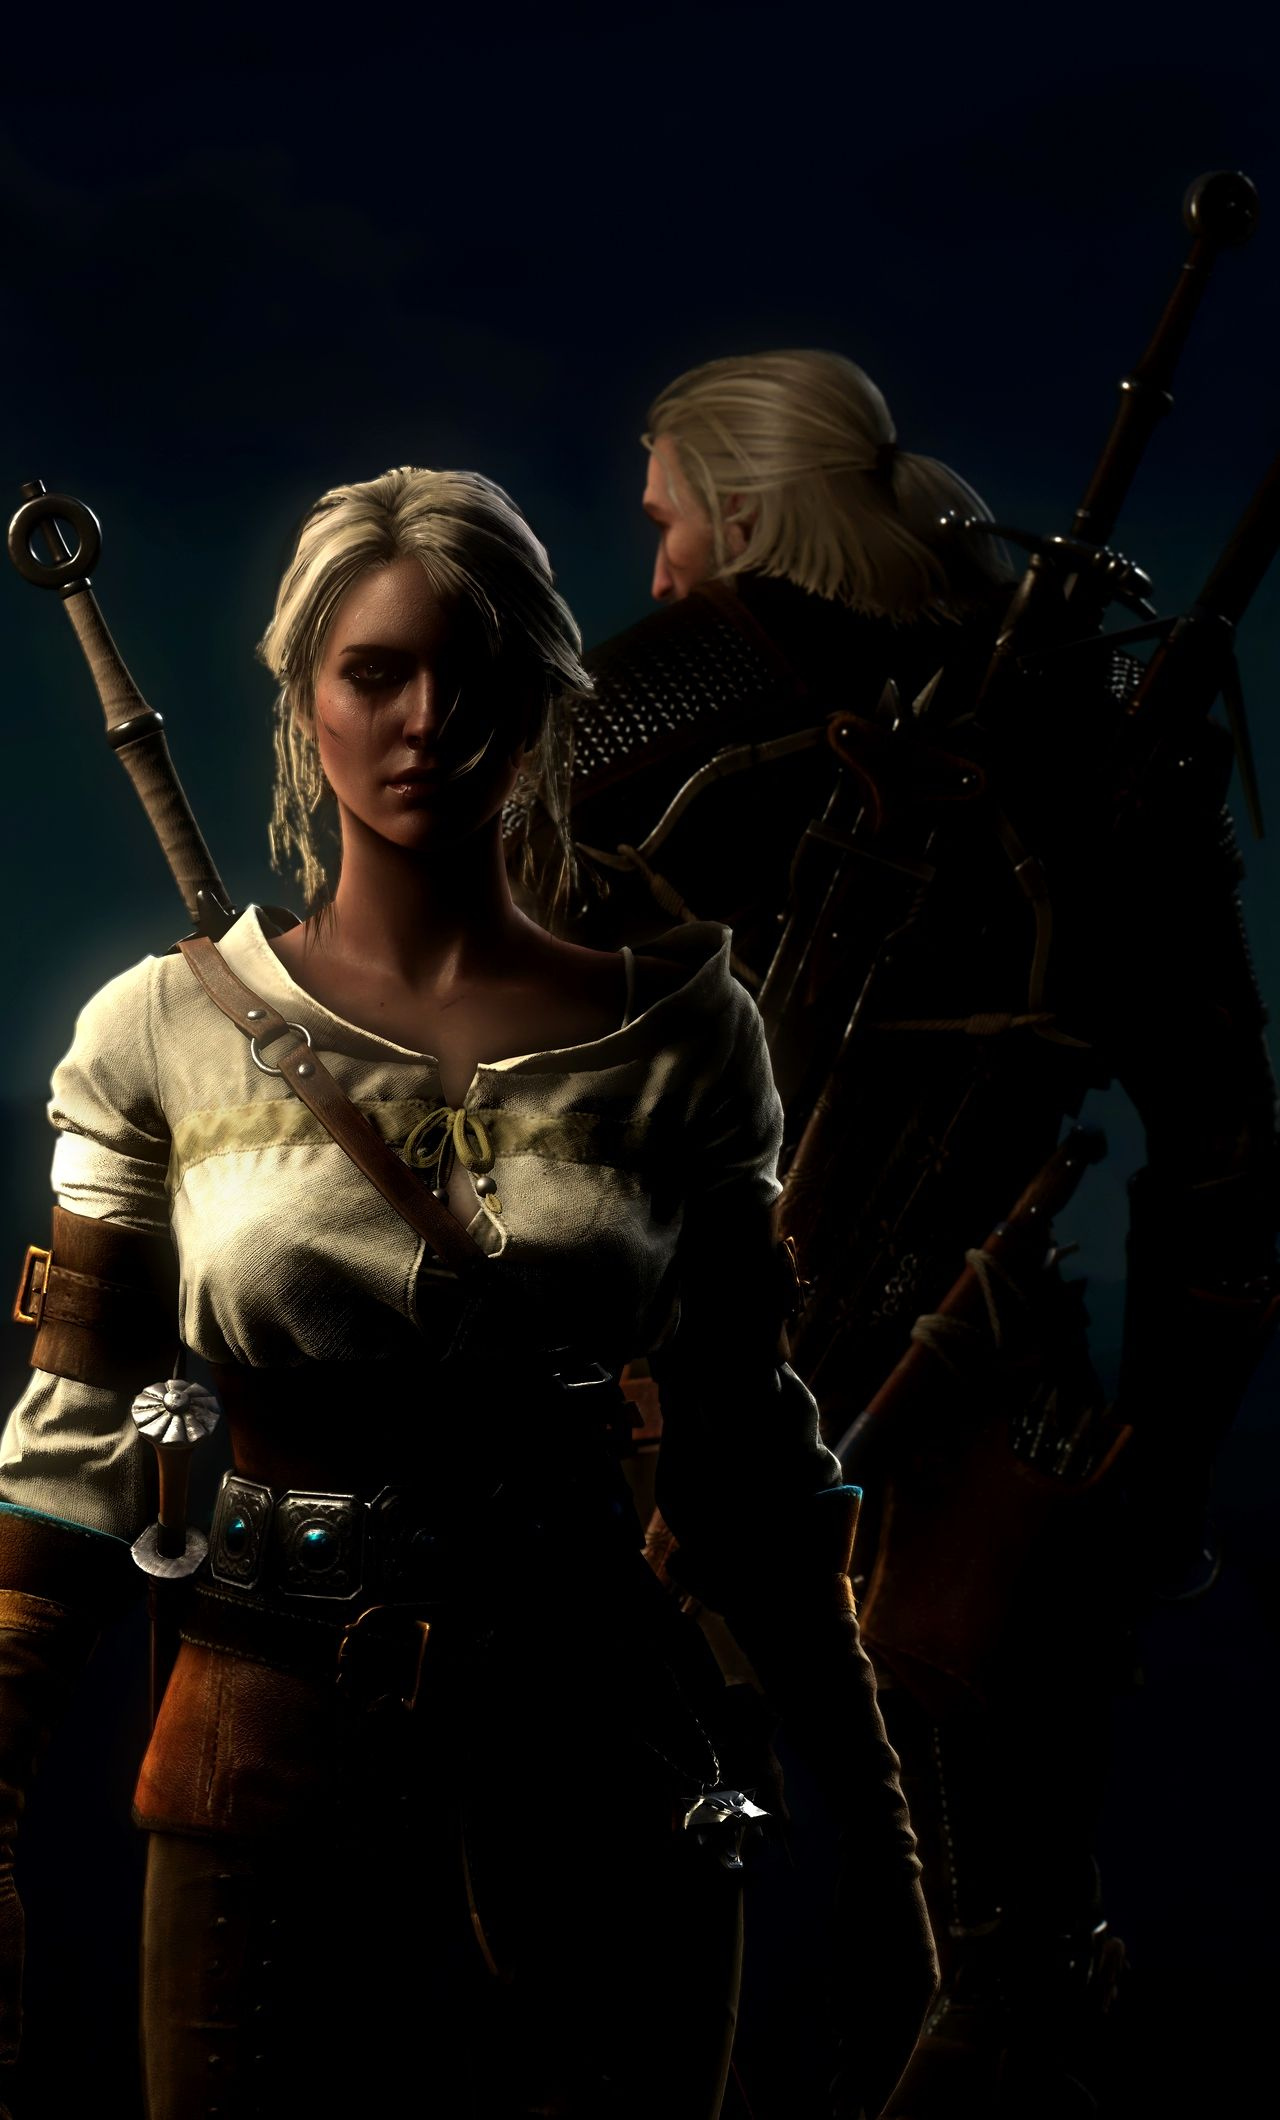 Witcher 3 Wallpaper 4k Iphone Trick Di 2020